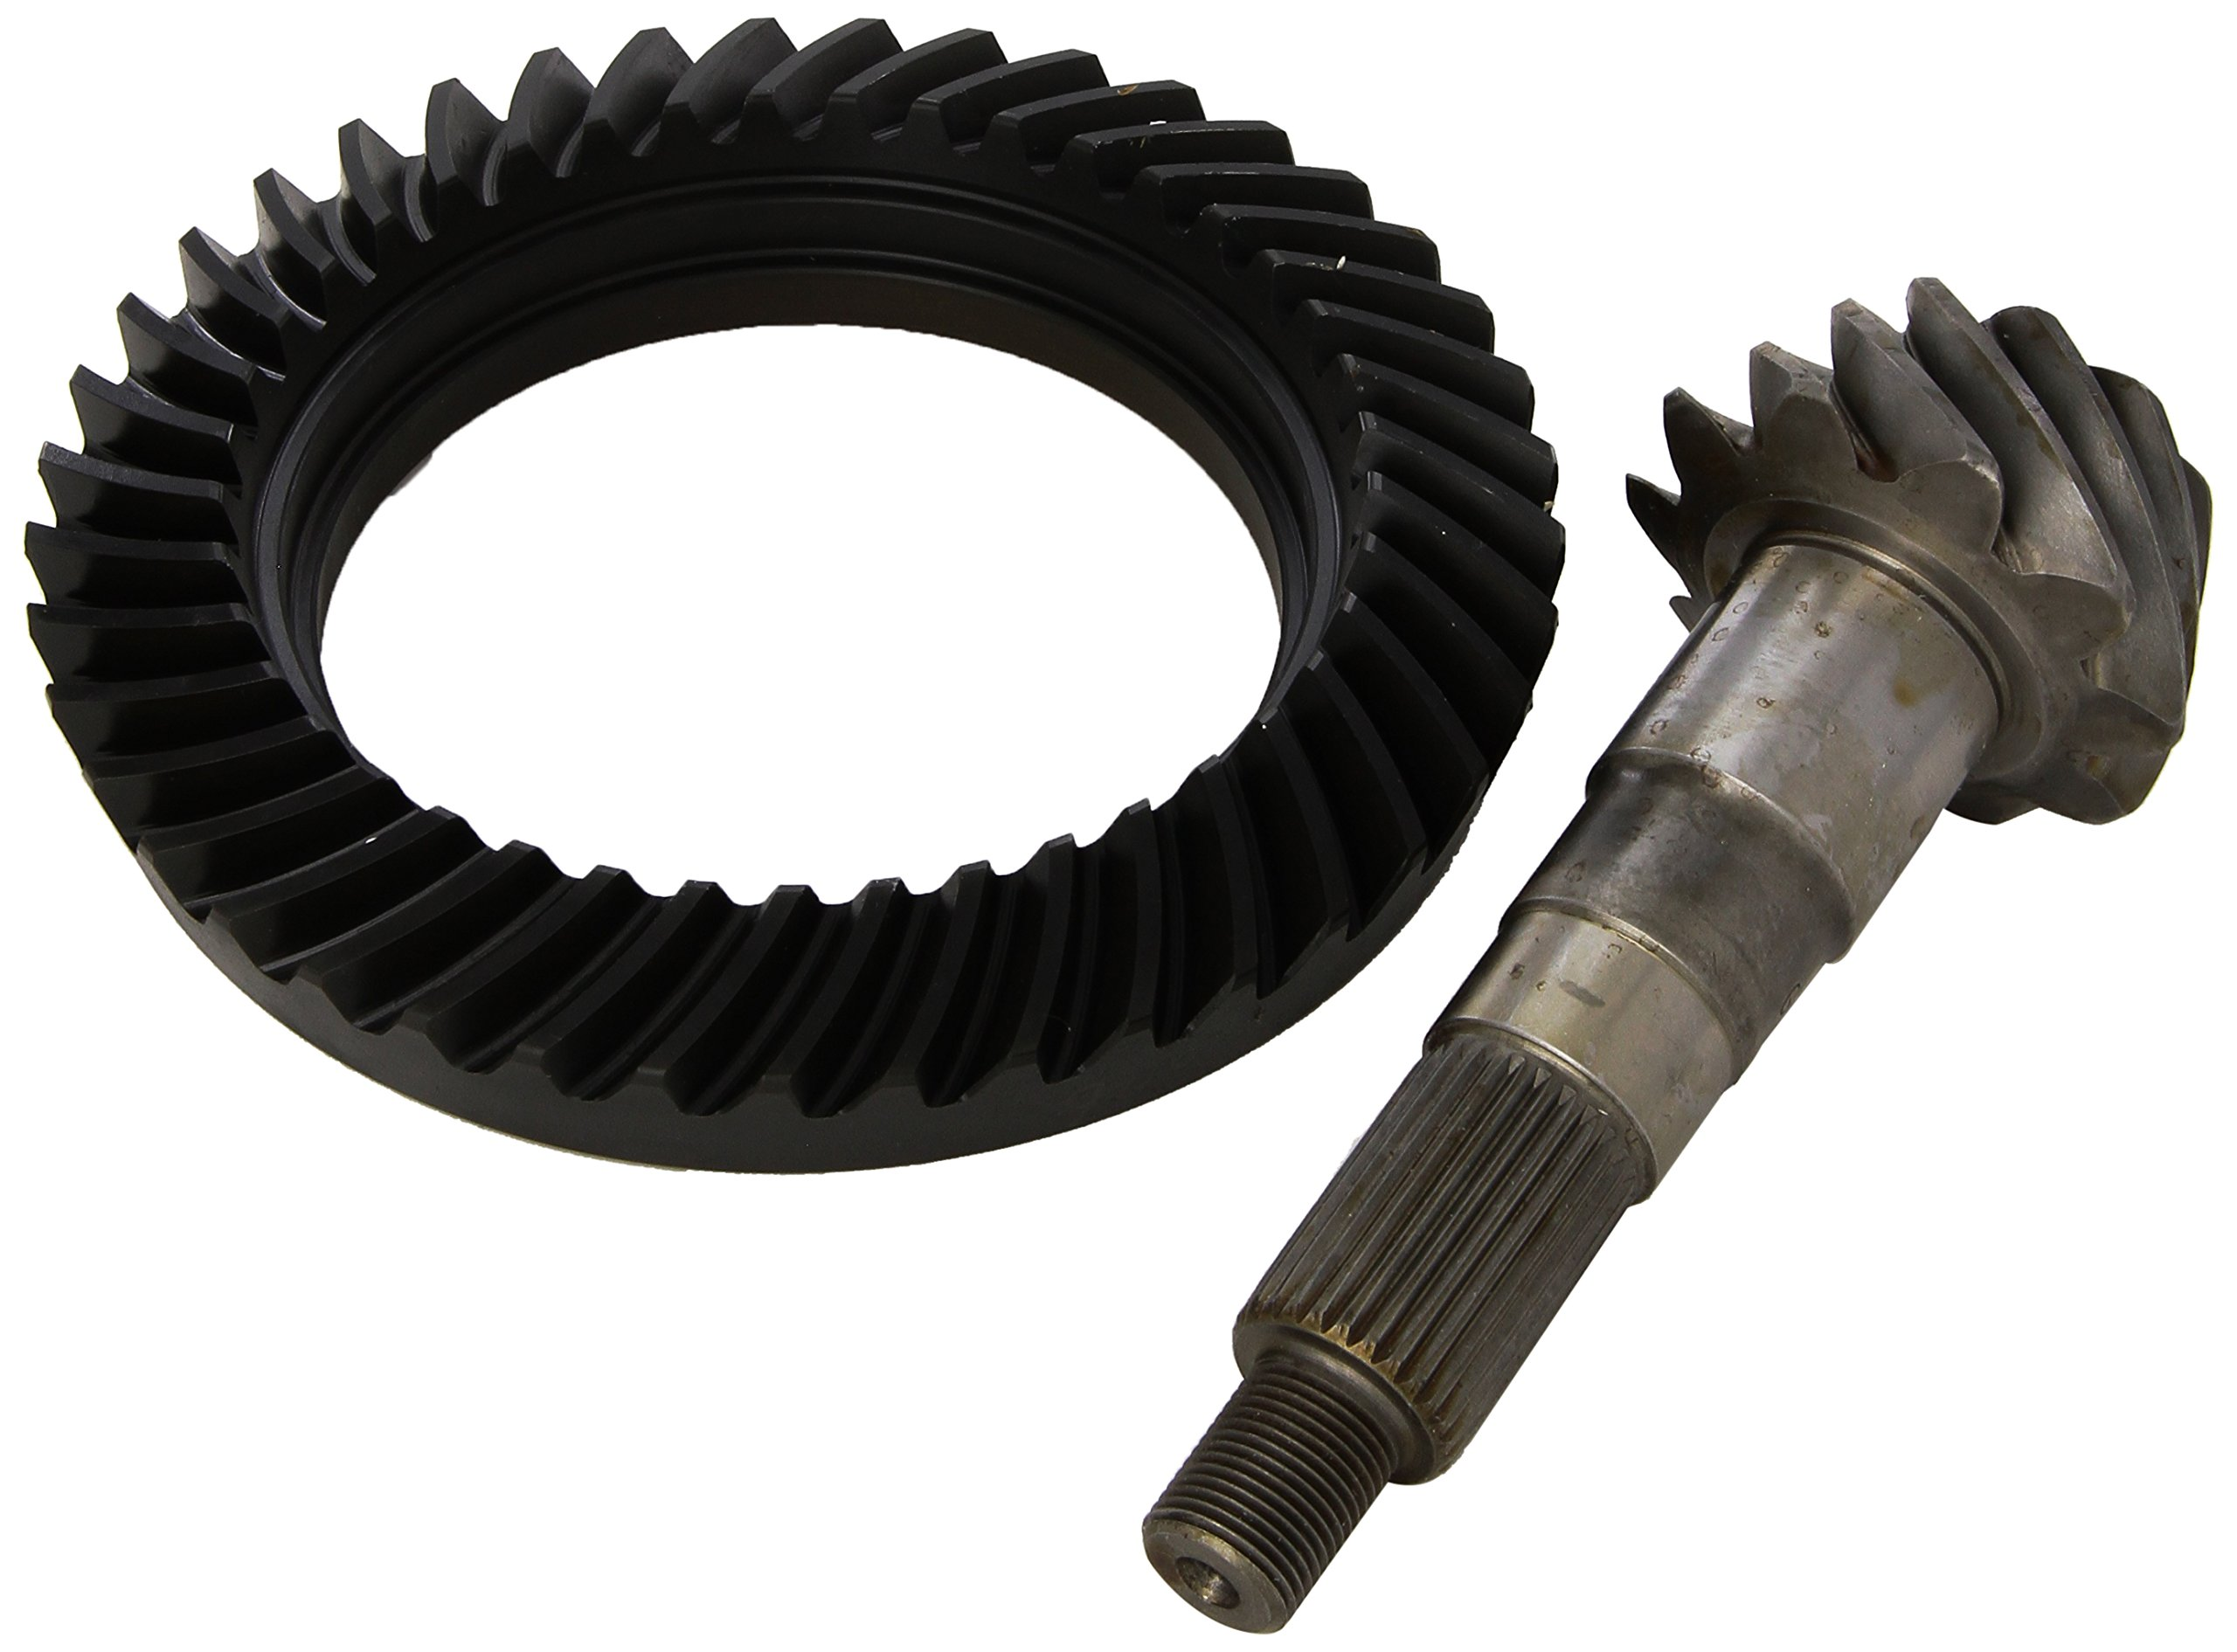 Motive Gear (D30-410TJ) Performance Ring and Pinion Differential Set, Dana 30 TJ style, 41-10 Teeth, 4.1 Ratio